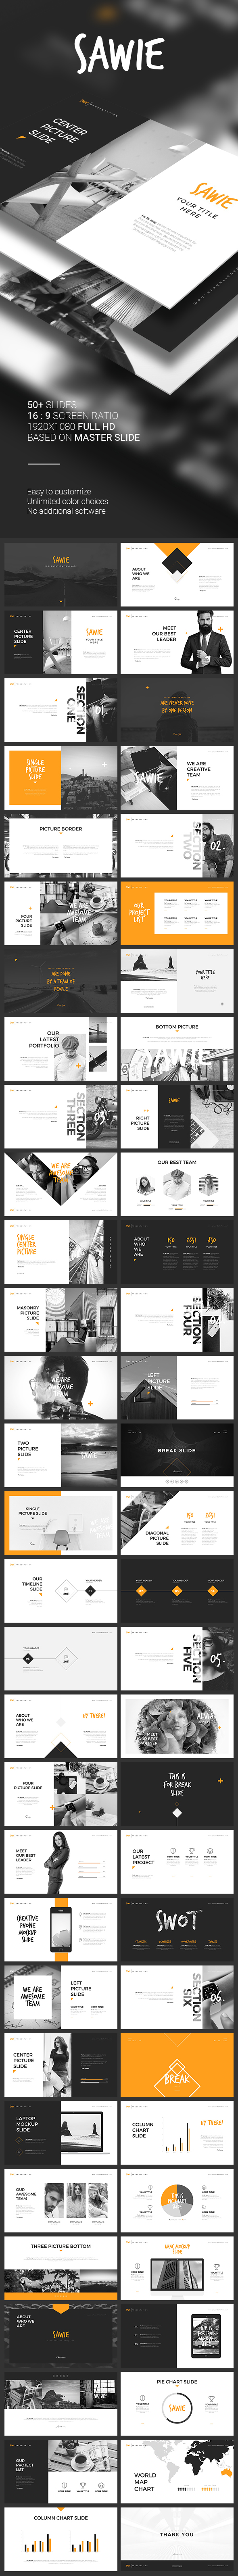 SAWIE PowerPoint Template - PowerPoint Templates Presentation Templates